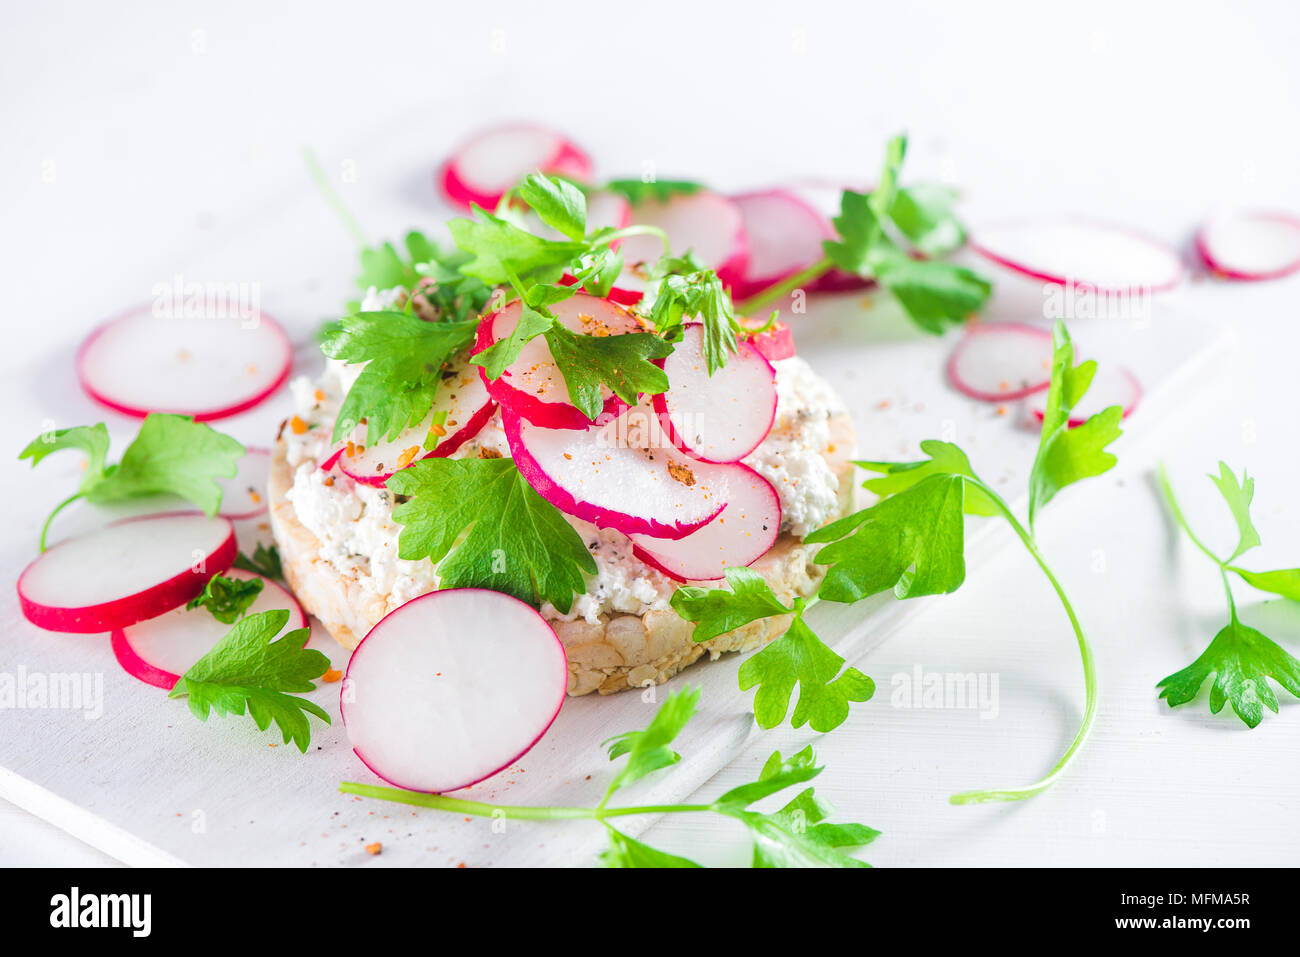 Healthy snack with crisp bread, radish slices, parsley, cottage cheese and pepper. Easy breakfast concept in high key with copy space. - Stock Image